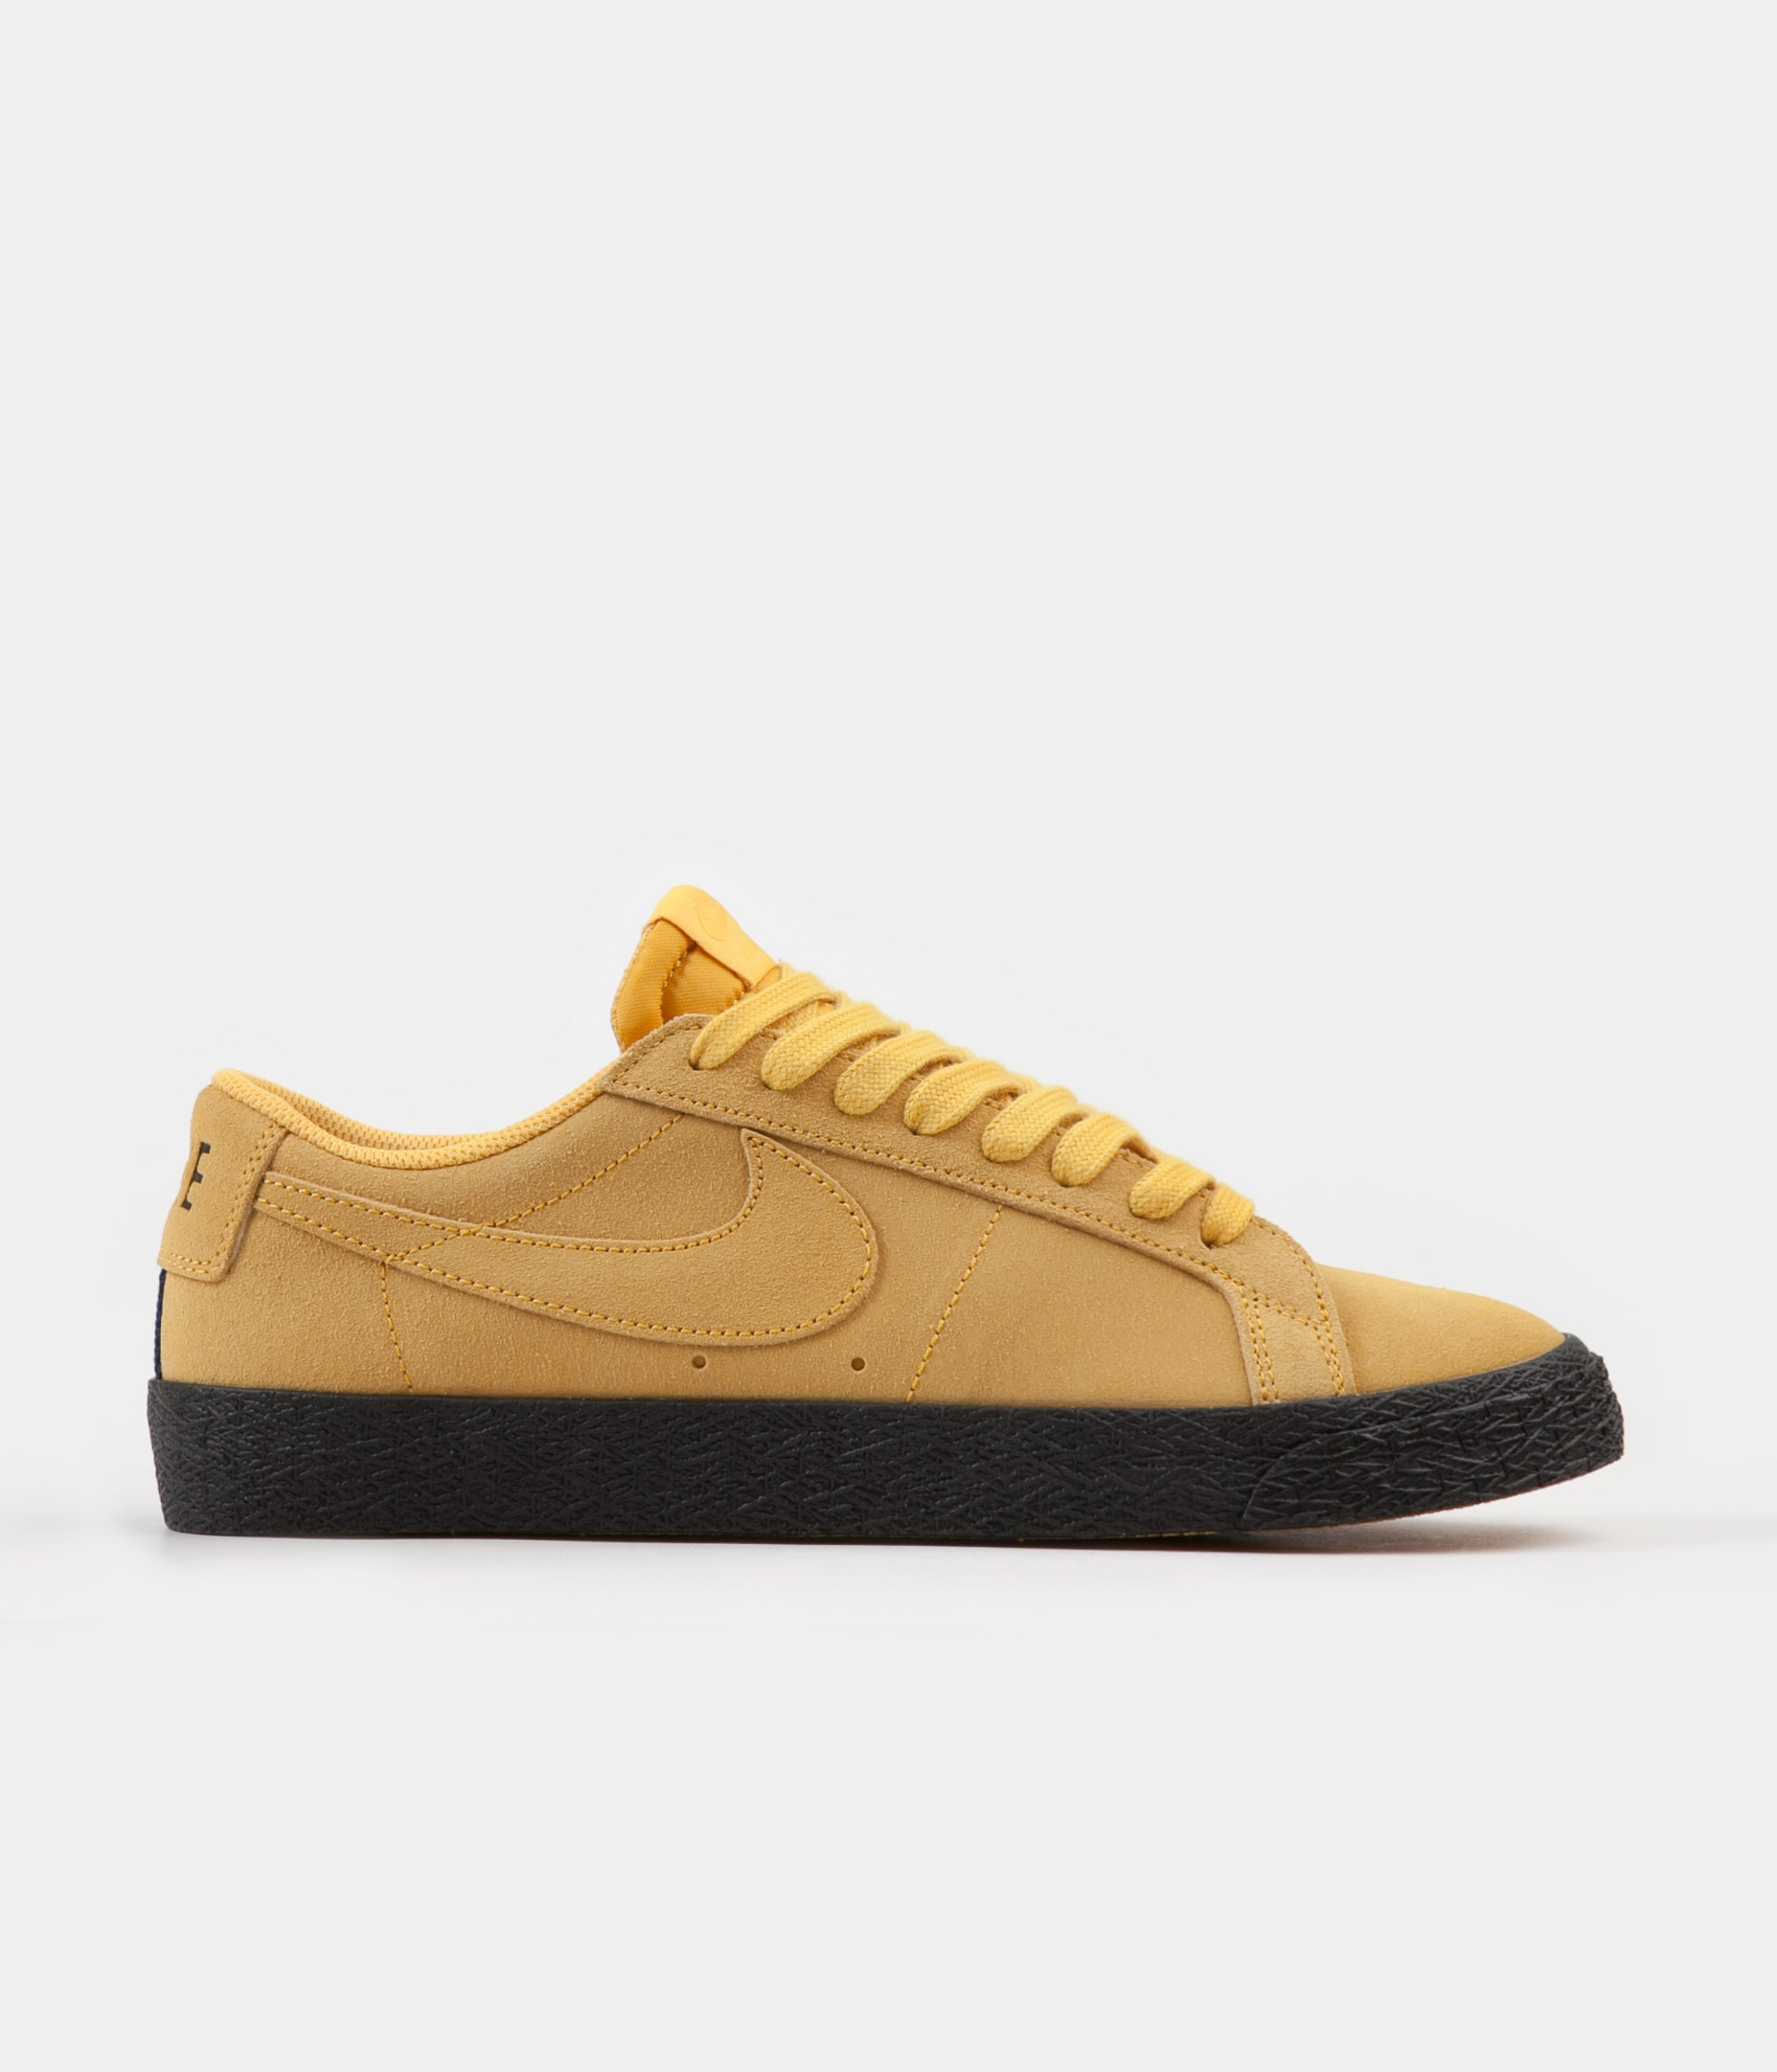 buy popular e83af fd76a Nike SB Blazer Low Shoes - Yellow Ochre   Yellow Ochre - Black